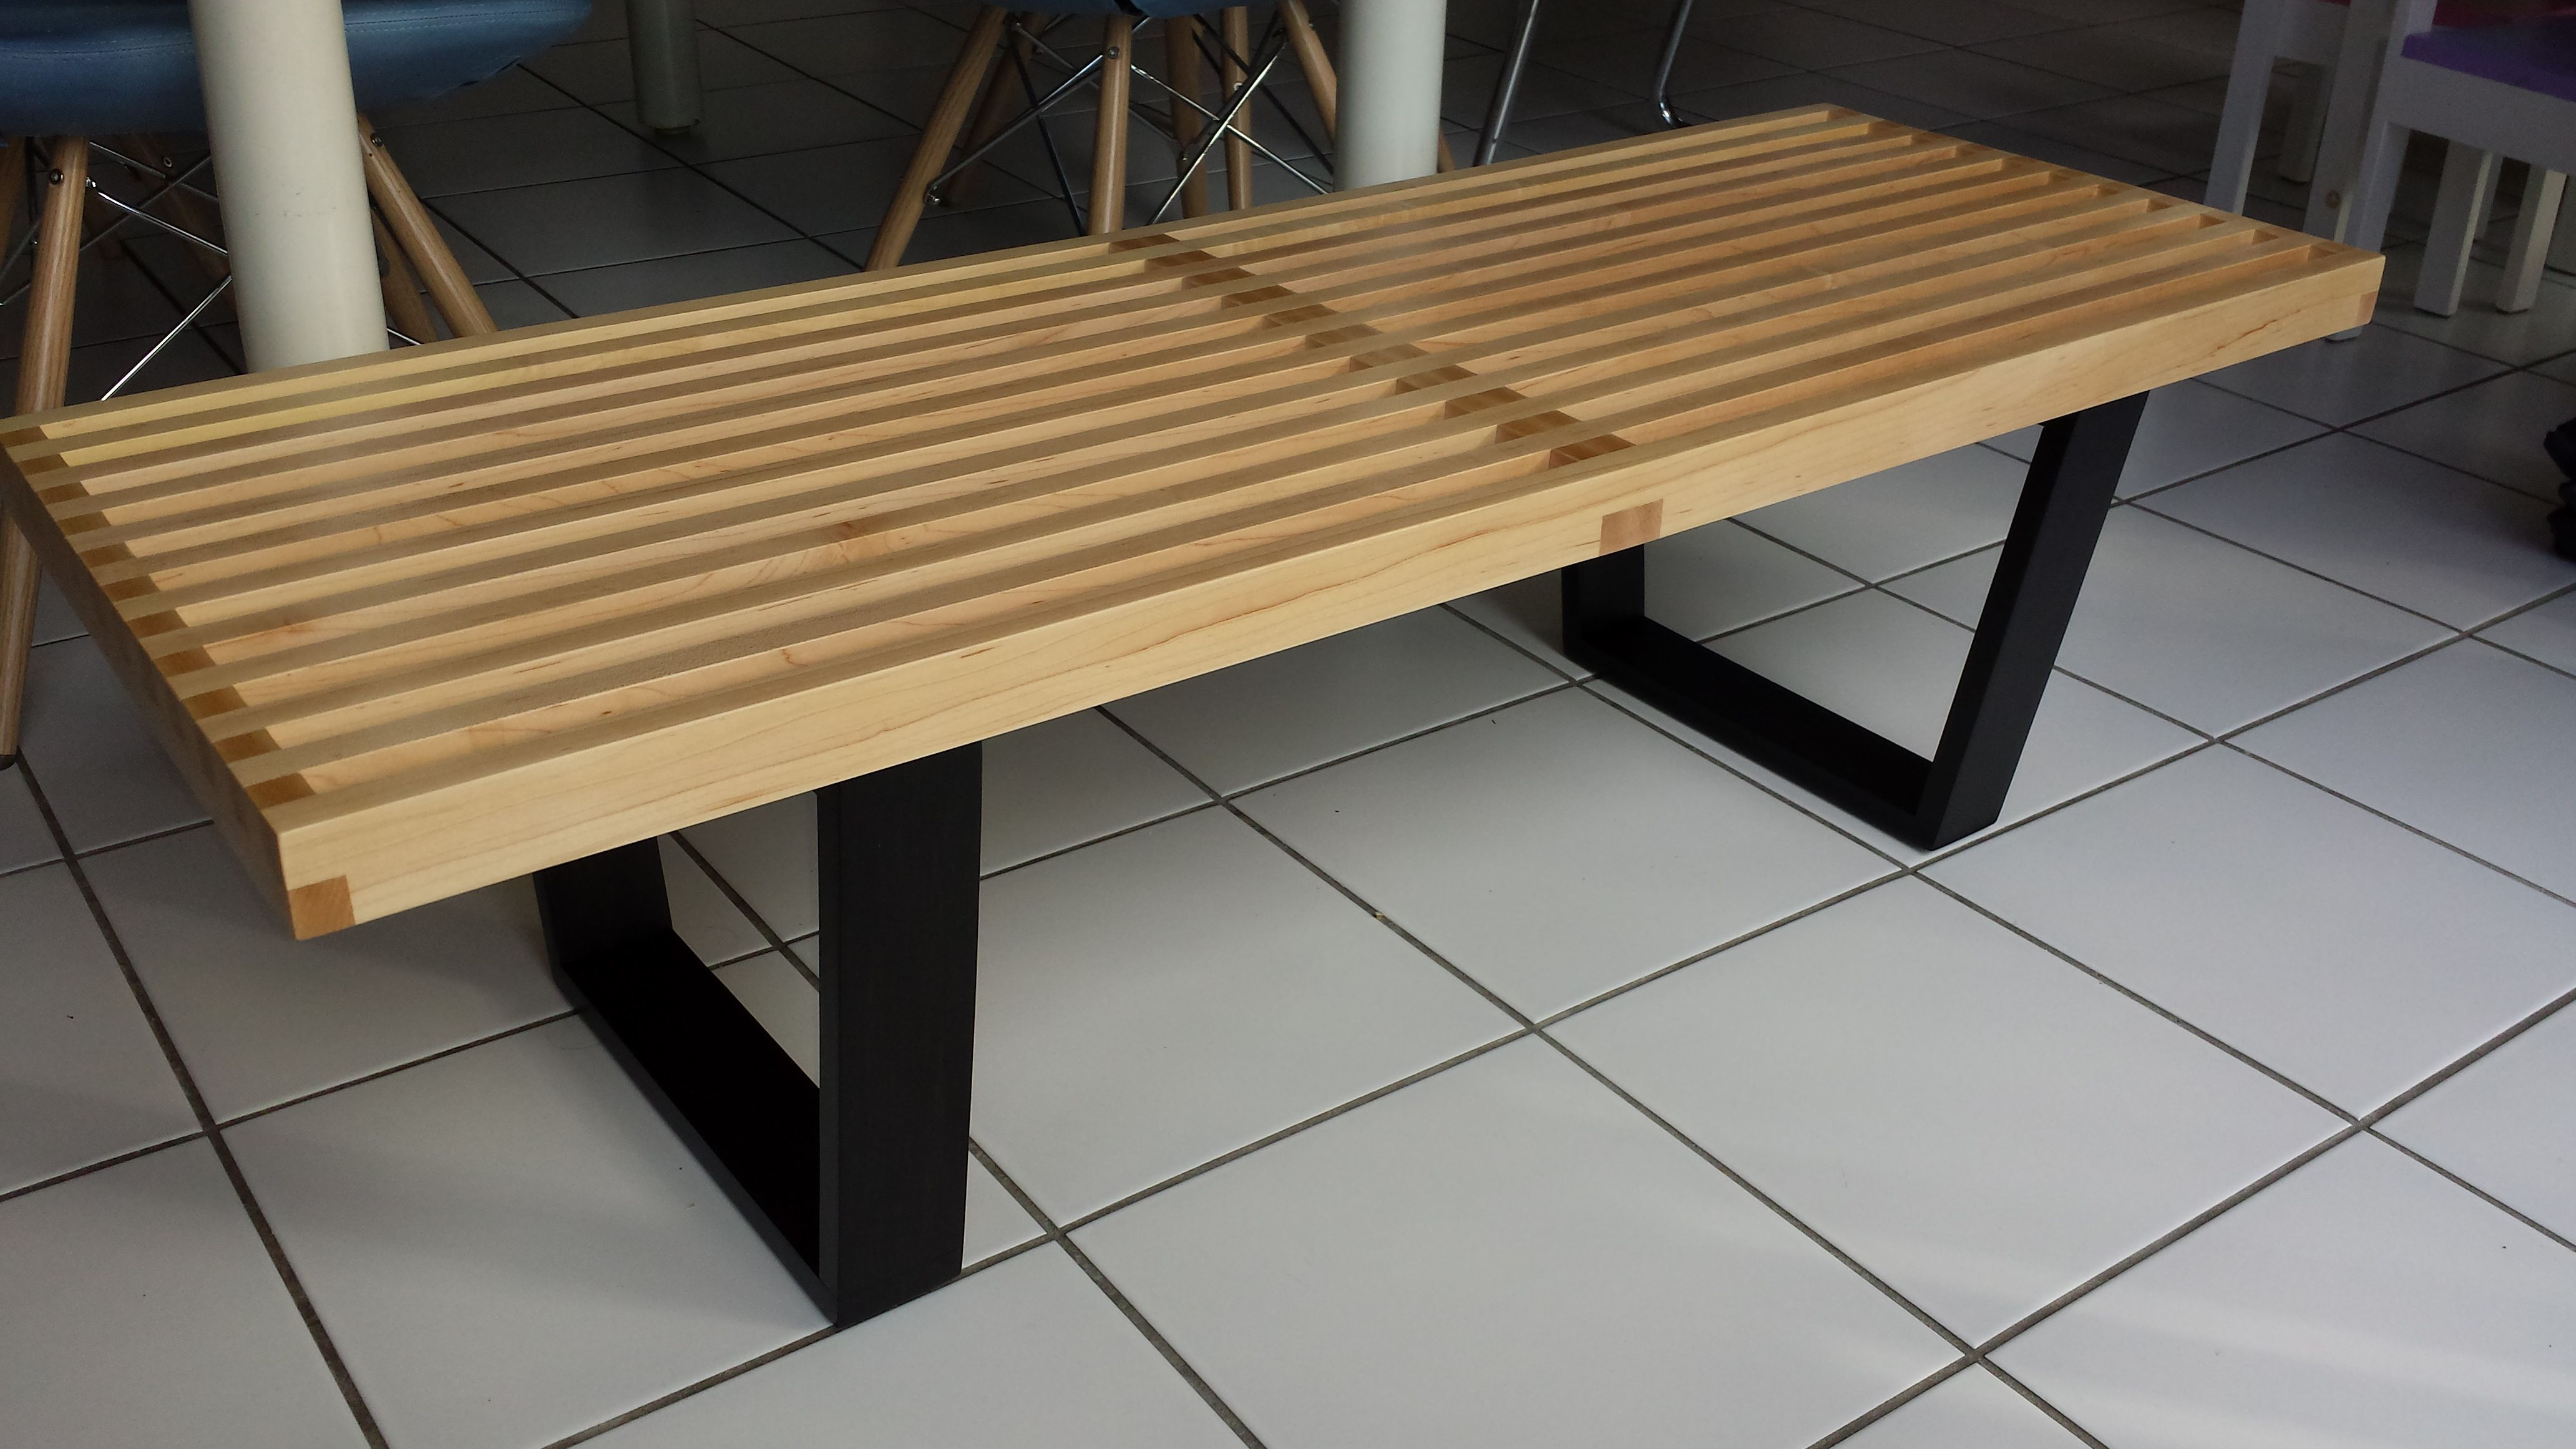 My Maple Nelson Bench Built Using A Ridiculous Upside Down Box Joint Jig And A Cheap Circular Saw The Project That Got M Nelson Bench Box Joints Box Joint Jig